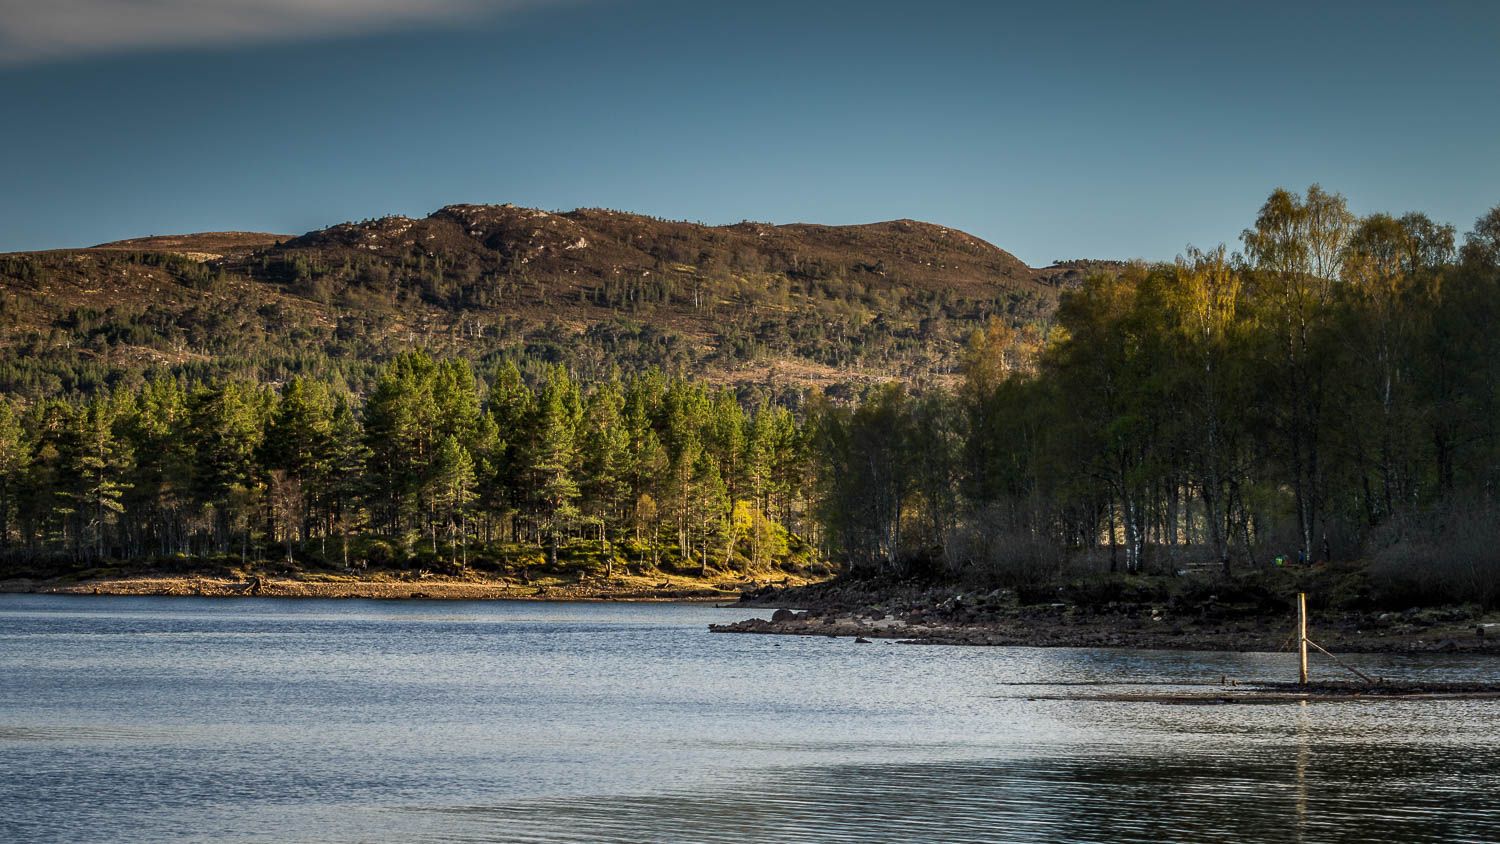 The fading sunlight from the shores of Loch Beinn A' Mheadhoin.